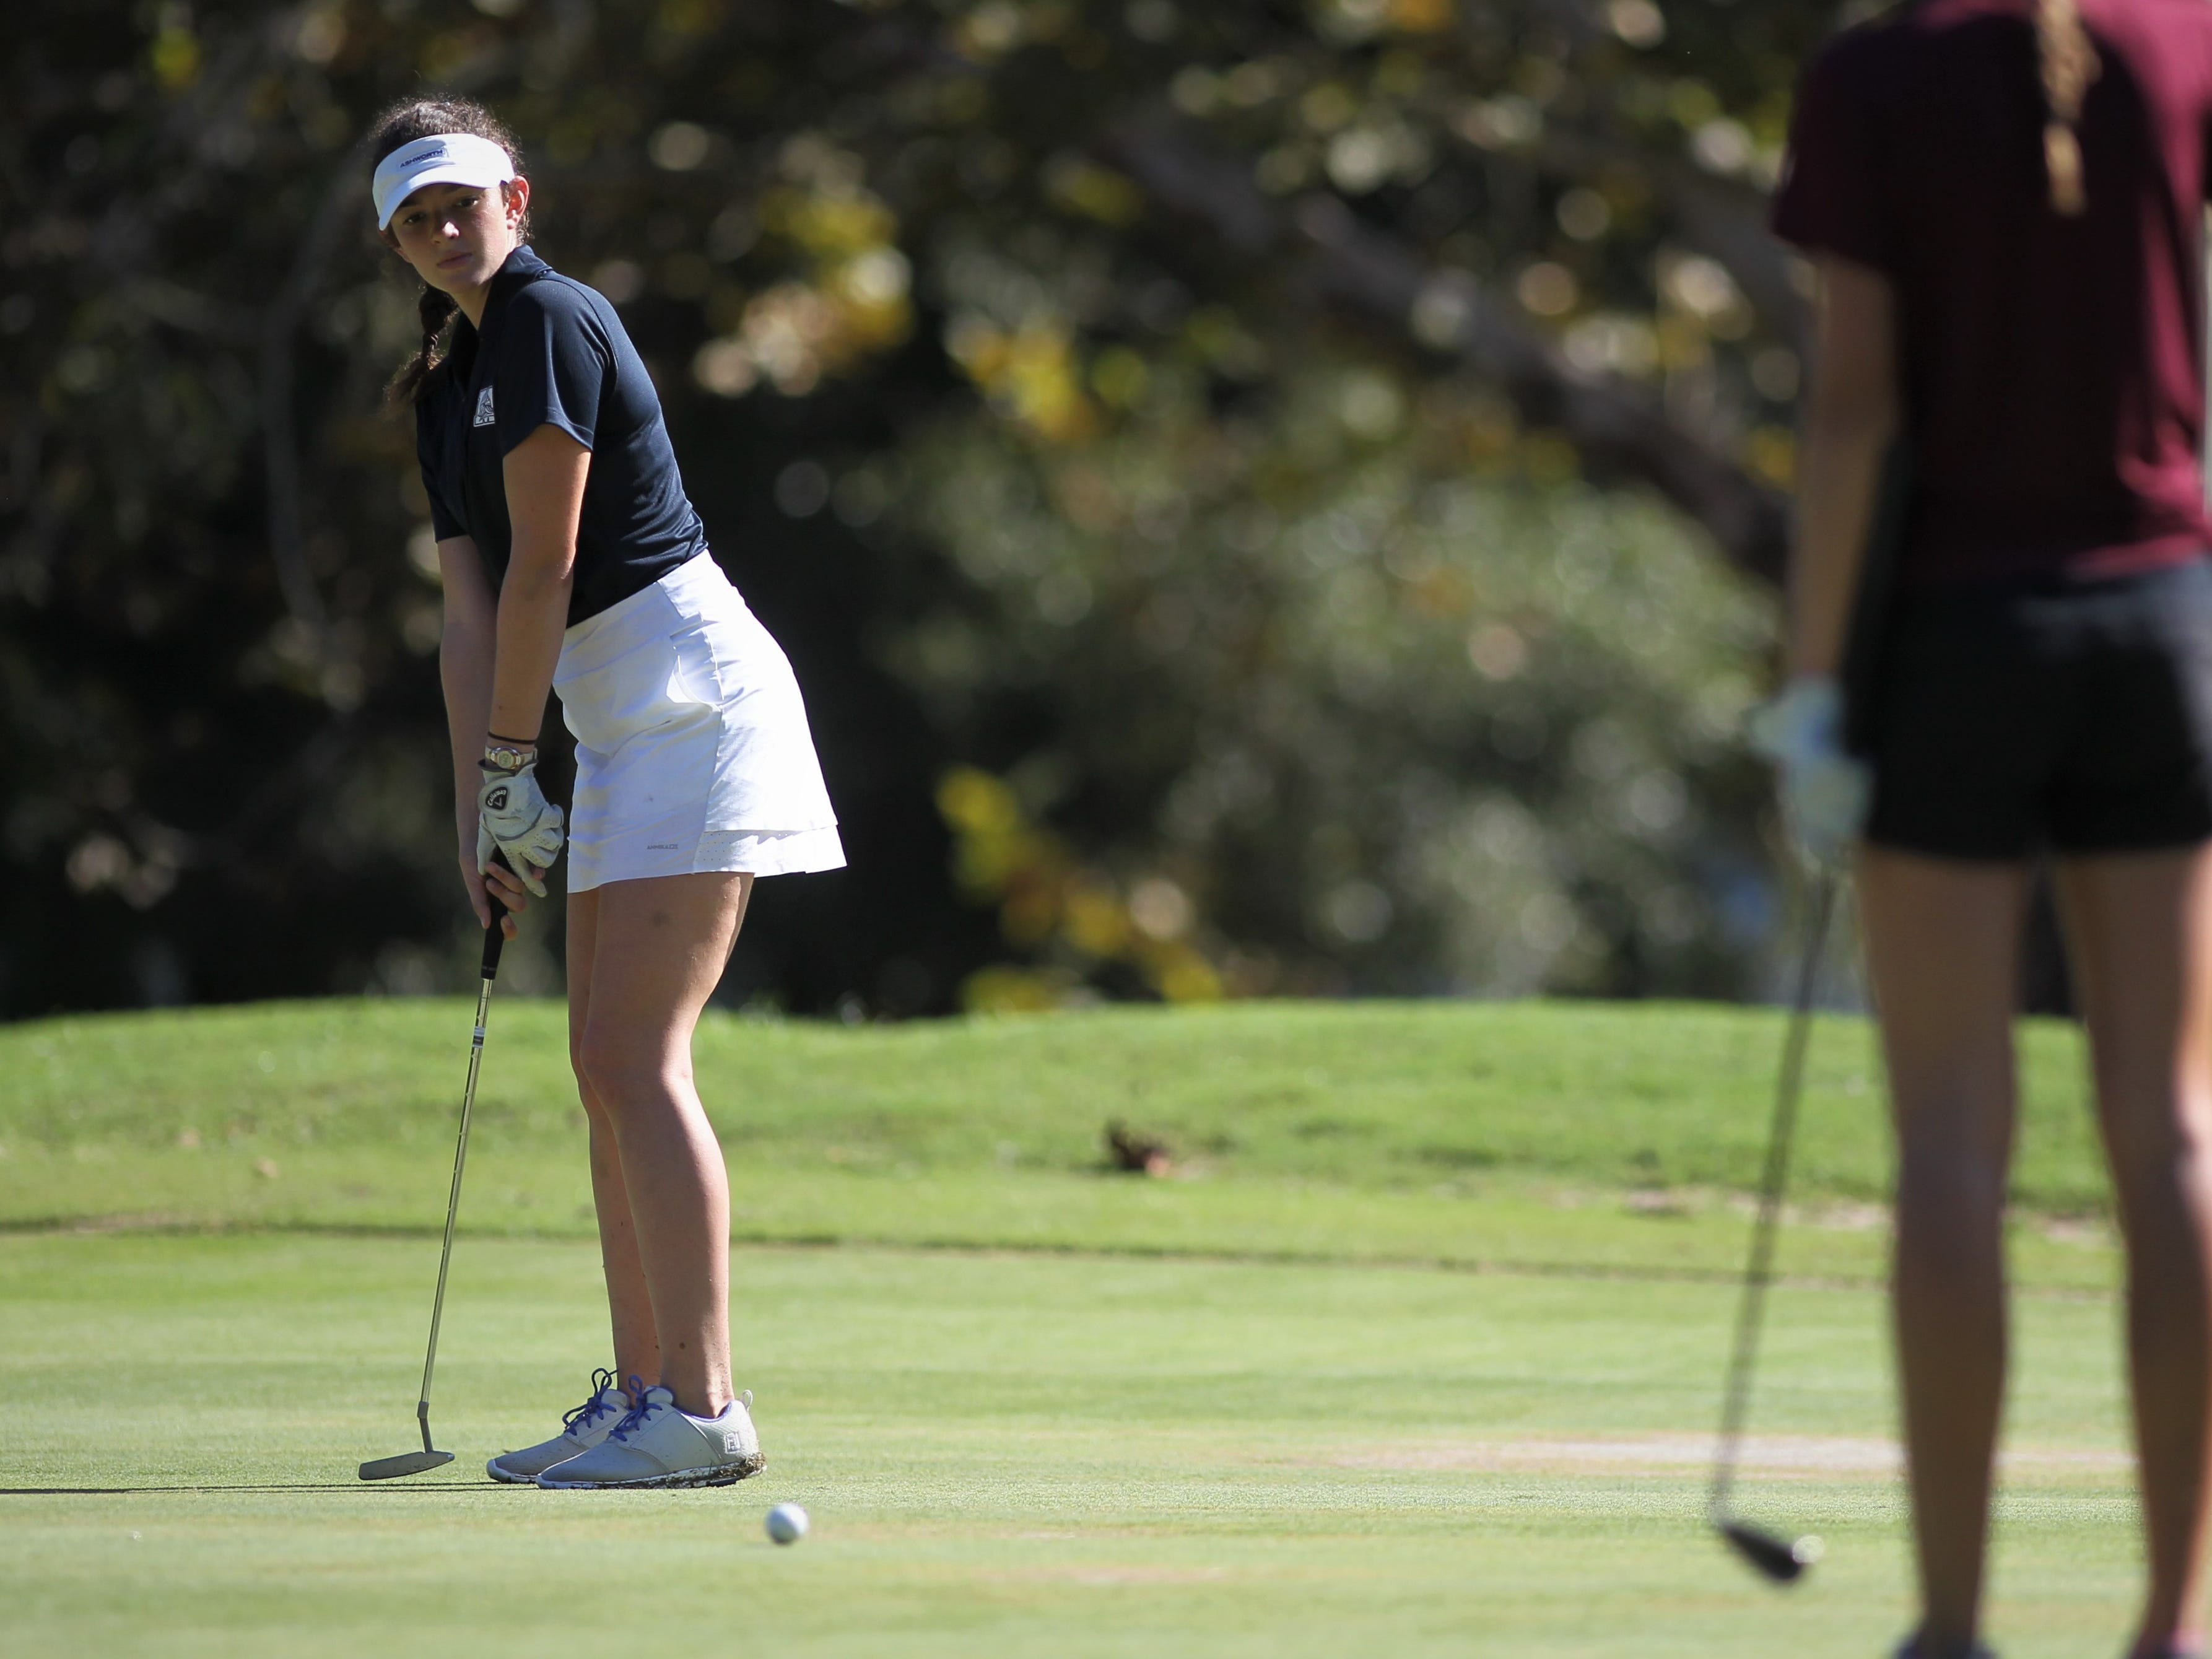 Maclay junior Laura Kathyn Foote plays in the girls golf Panhandle Invitational at Killearn Country Club, Oct. 4, 2018.